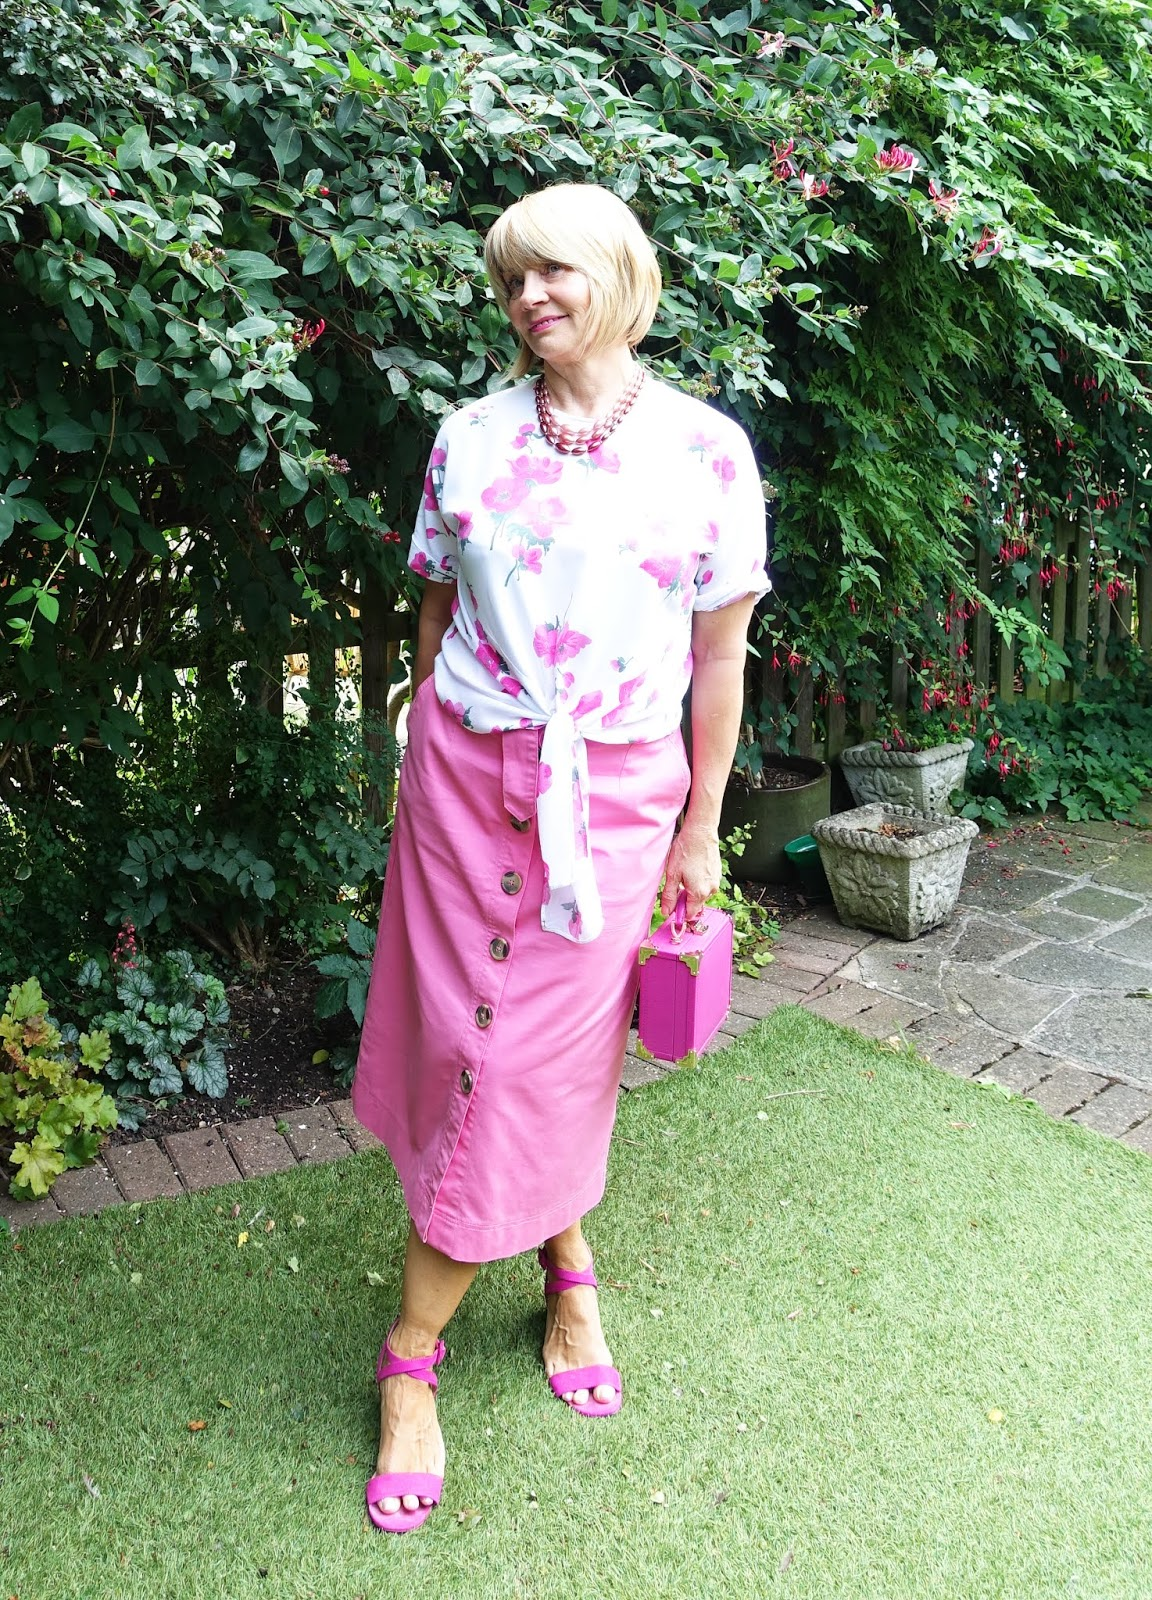 Millennial pink midi skirt, sandals and rose print blouse worn by over-50s blogger Gail Hanlon at Is This Mutton